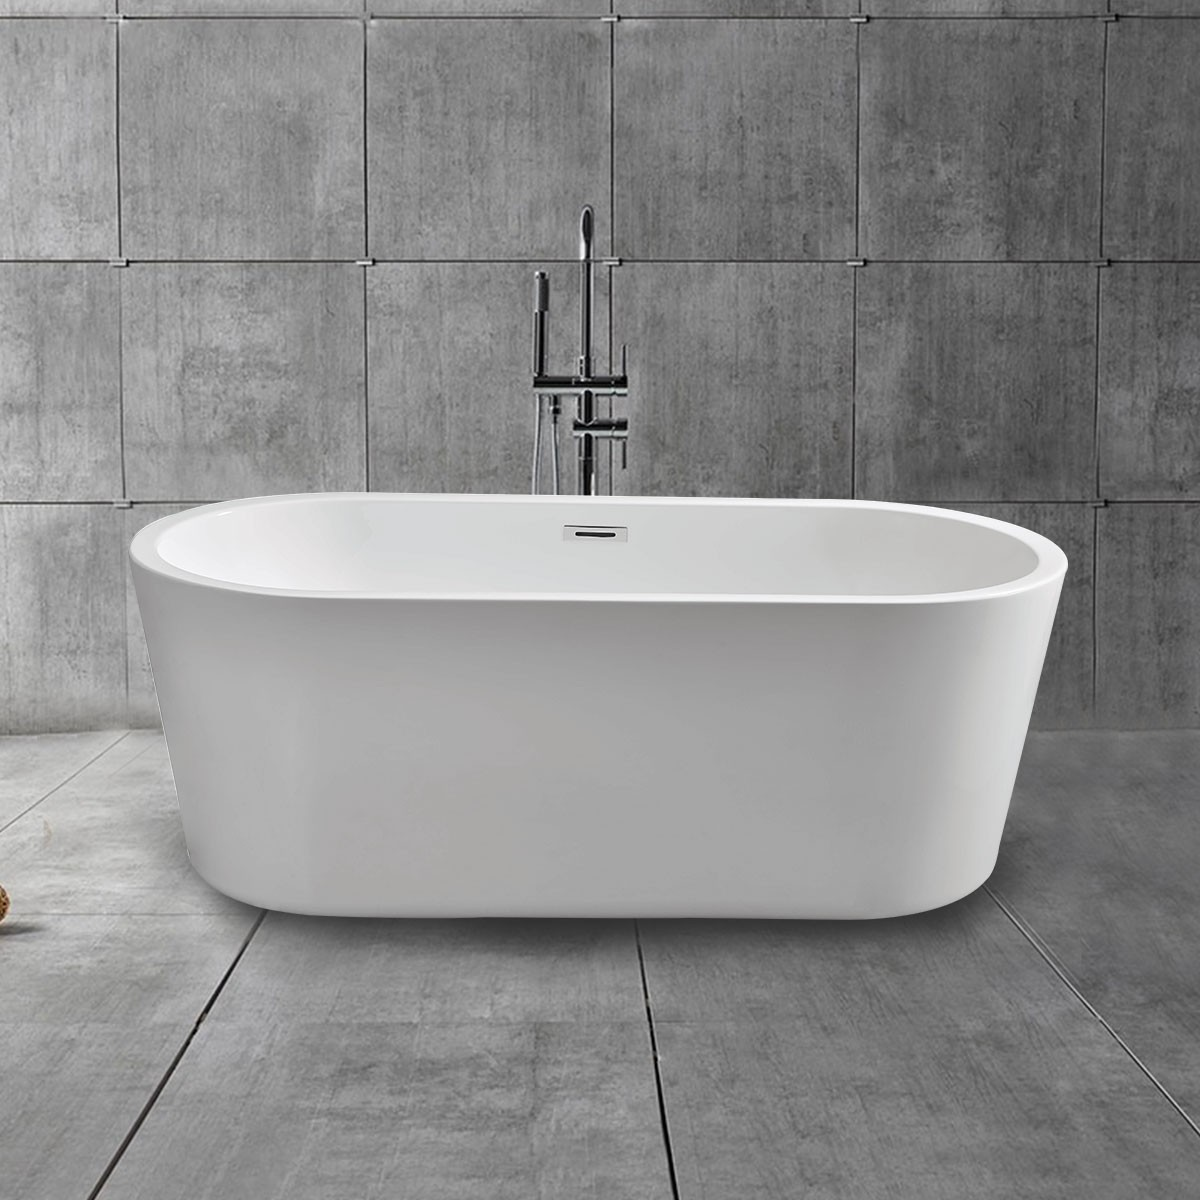 59 In Soaking Bathtub Acrylic White DK MEC3004A Decoraport Canada